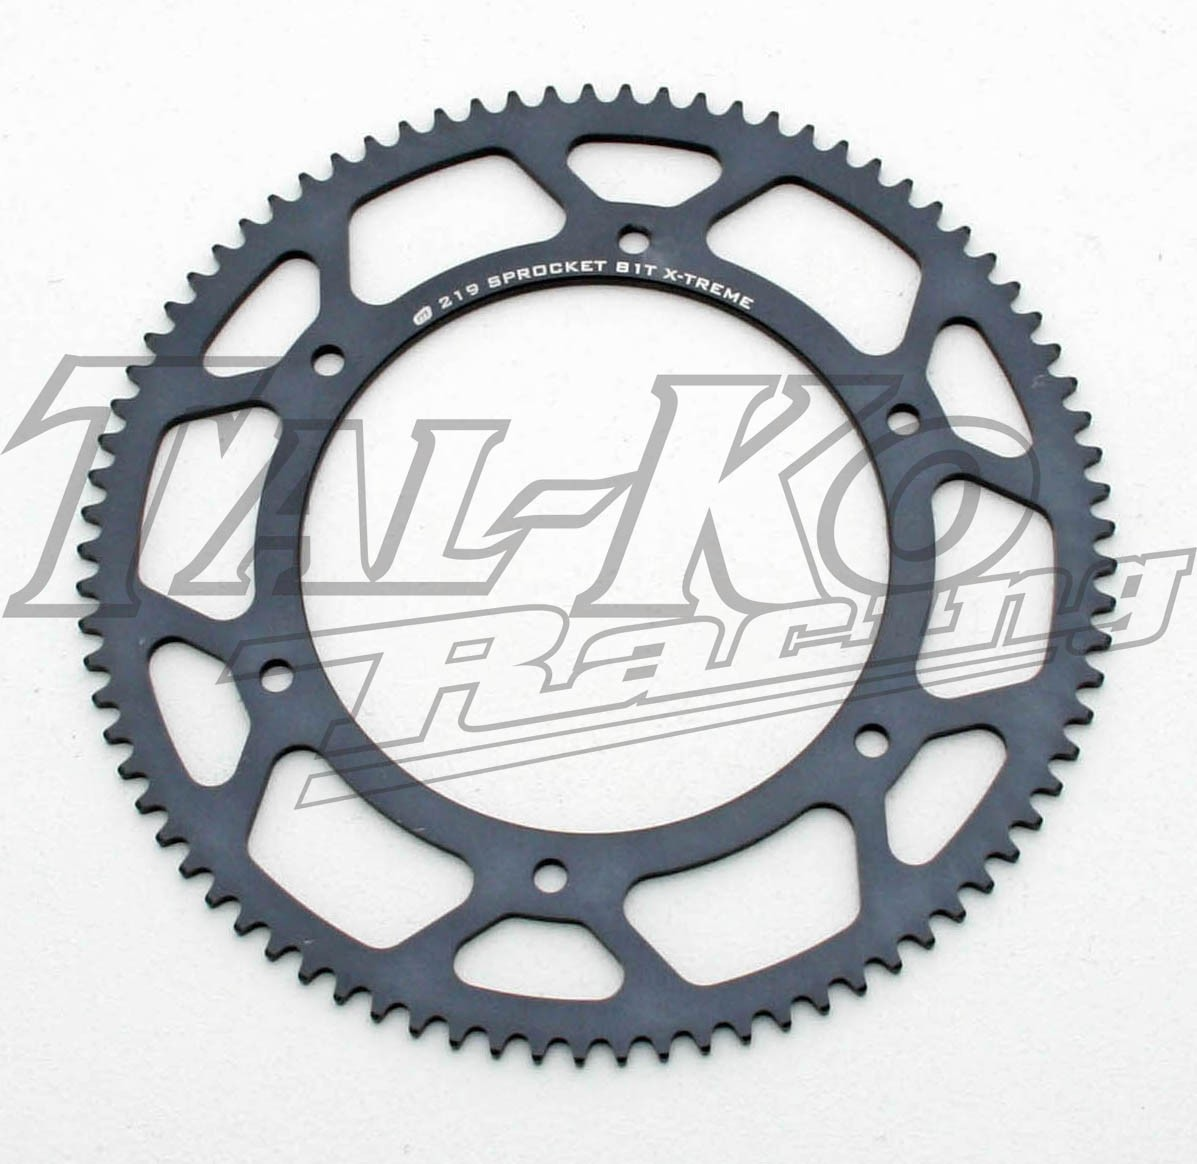 X-TREME AXLE SPROCKET 219 81T N